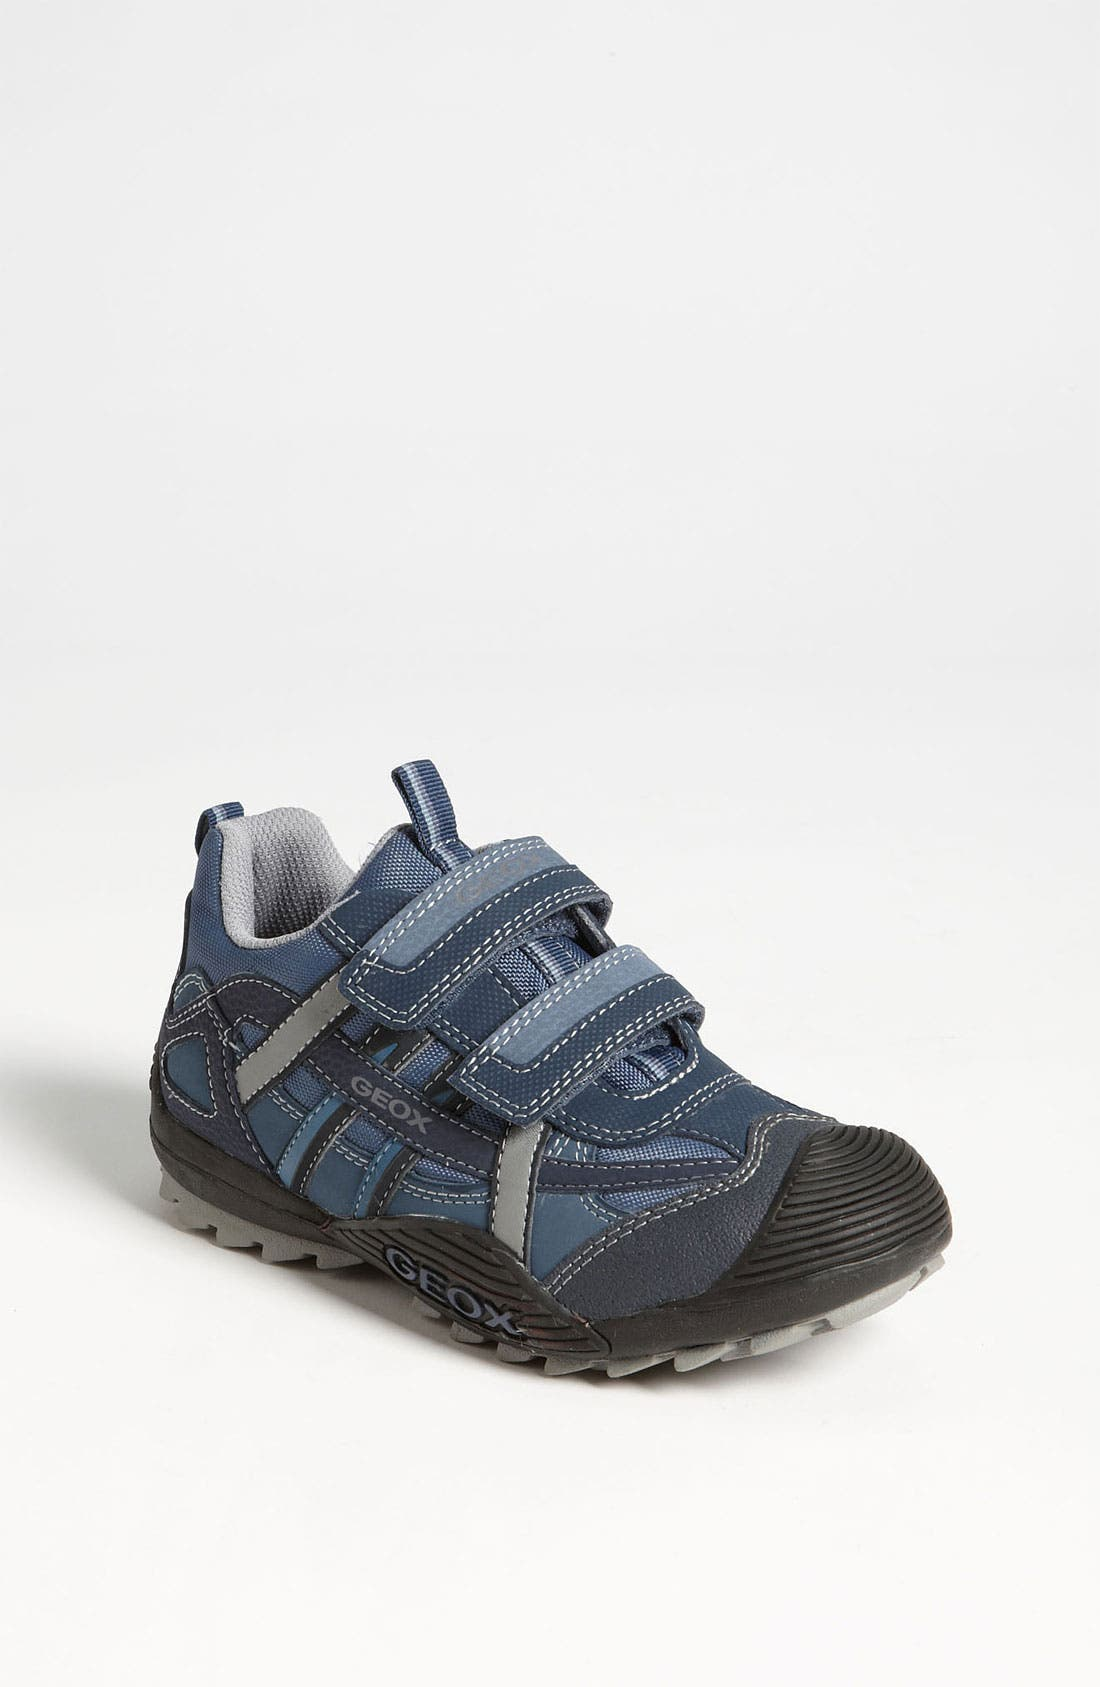 Alternate Image 1 Selected - Geox 'Savage' Sneaker (Walker, Toddler, Little Kid & Big Kid)